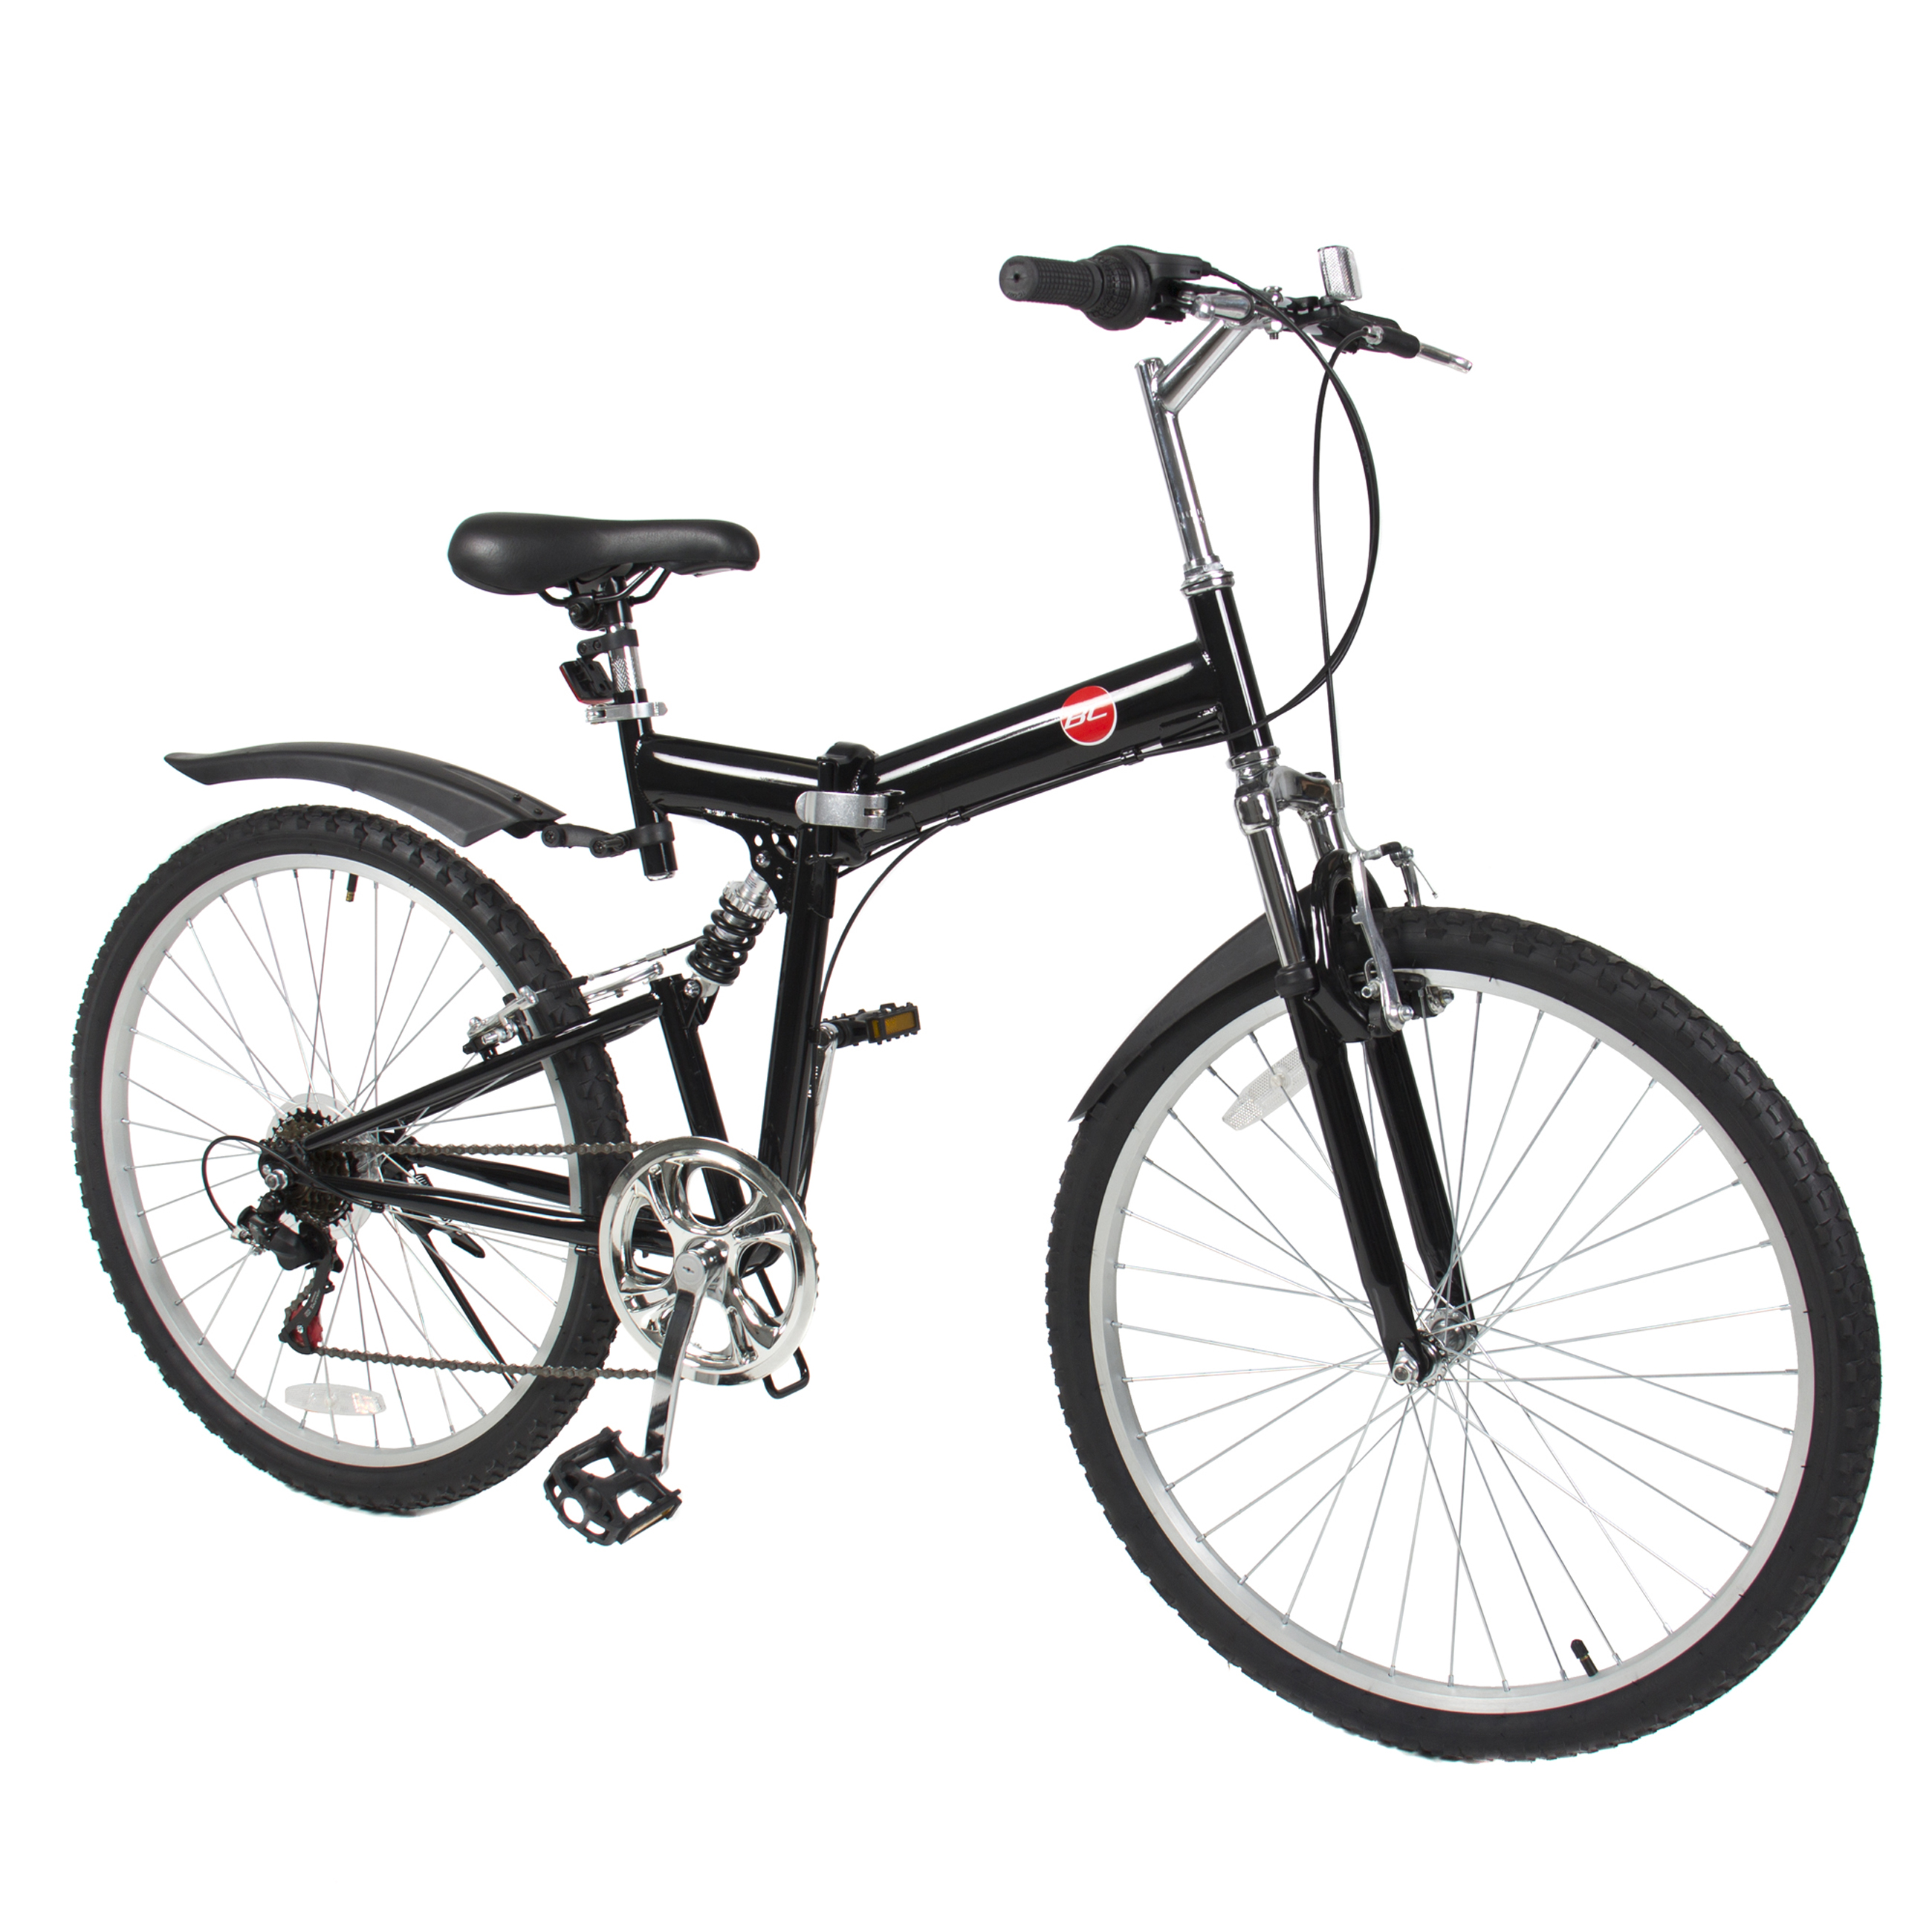 "BC DECKER 26"" Folding Mountain Bicycle 6 Speed Shimano Fo..."